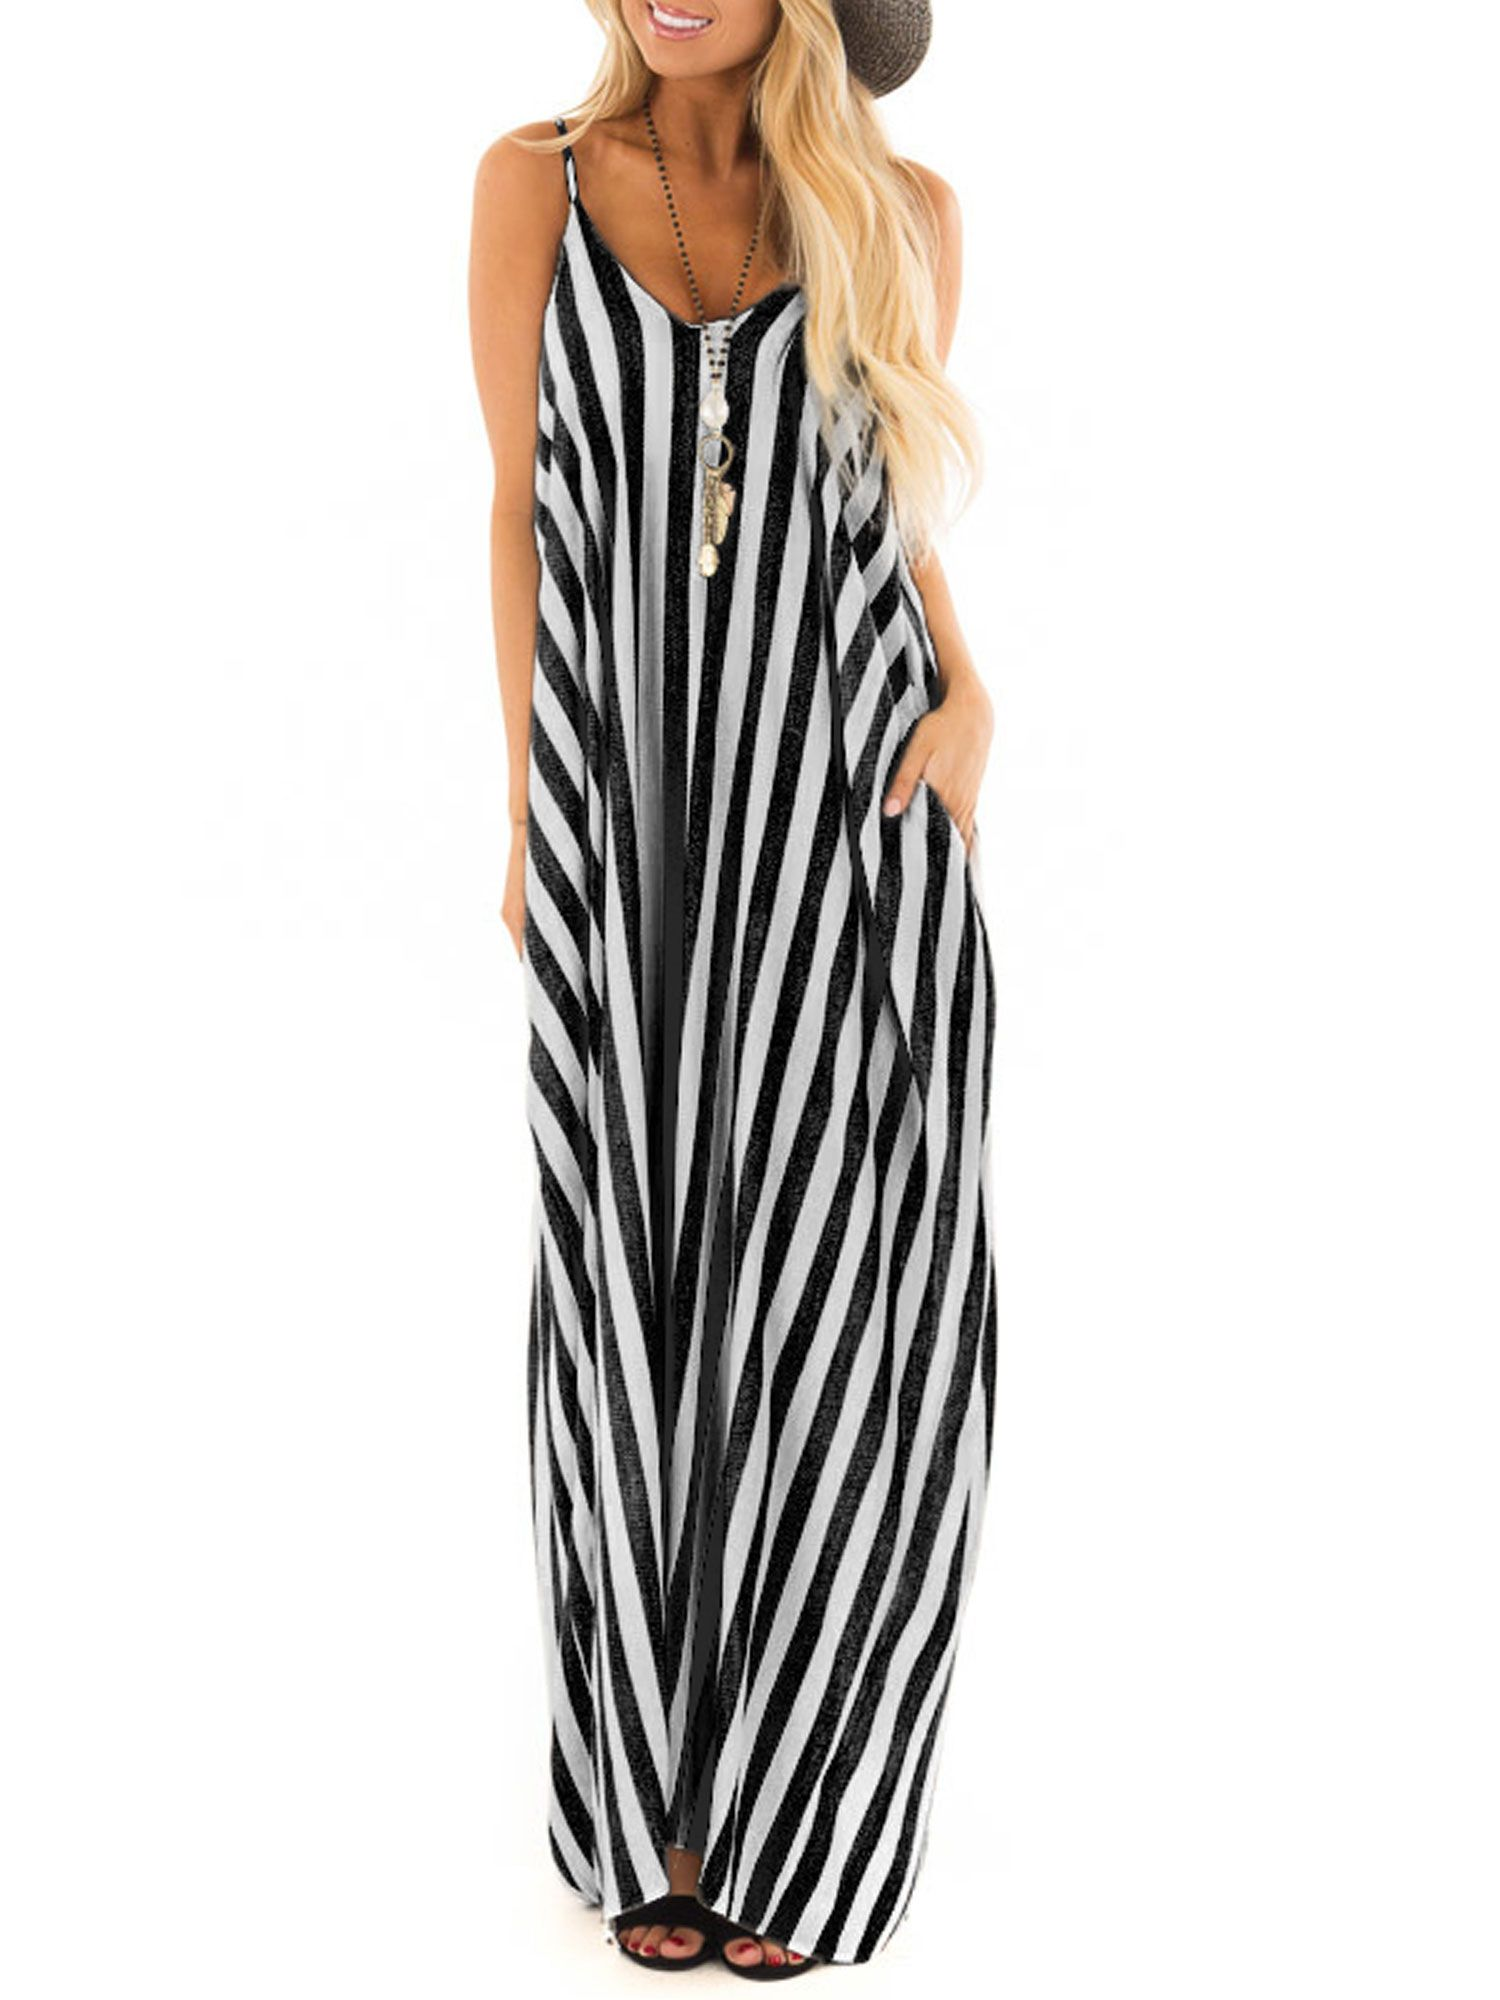 Picked Up From Walmart Free 2 Day Shipping Buy Summer Holiday Women Strappy Cami Striped Lo In 2020 Maxi Dresses Casual Boho Dresses Long Spaghetti Strap Maxi Dress [ 2000 x 1500 Pixel ]